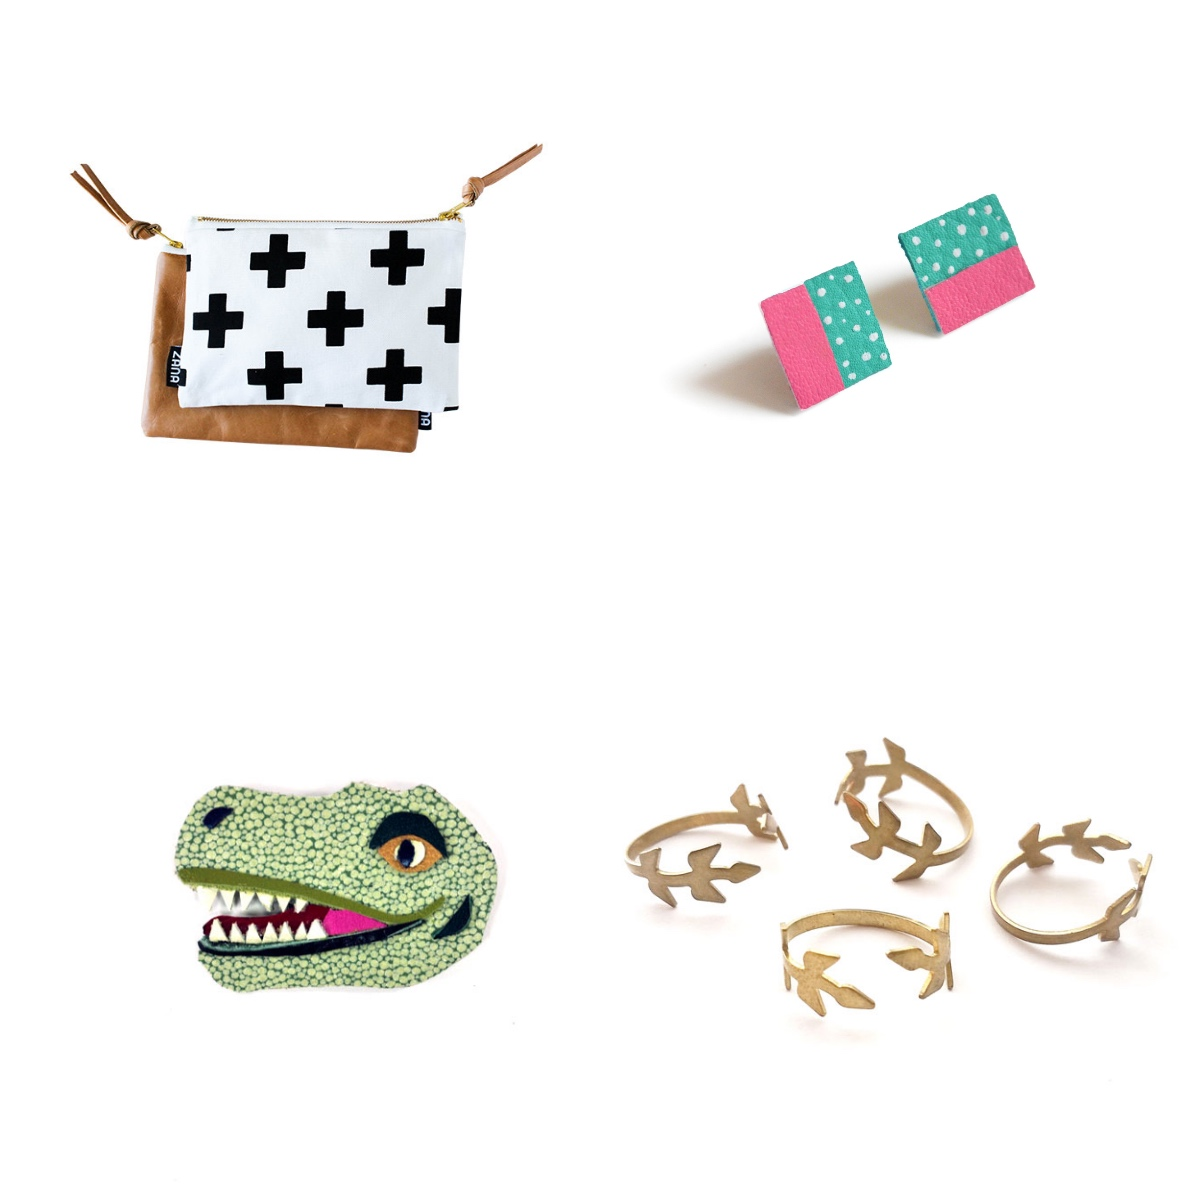 Pop shop america handmade jewelry subscription box for Jewelry stores in usa